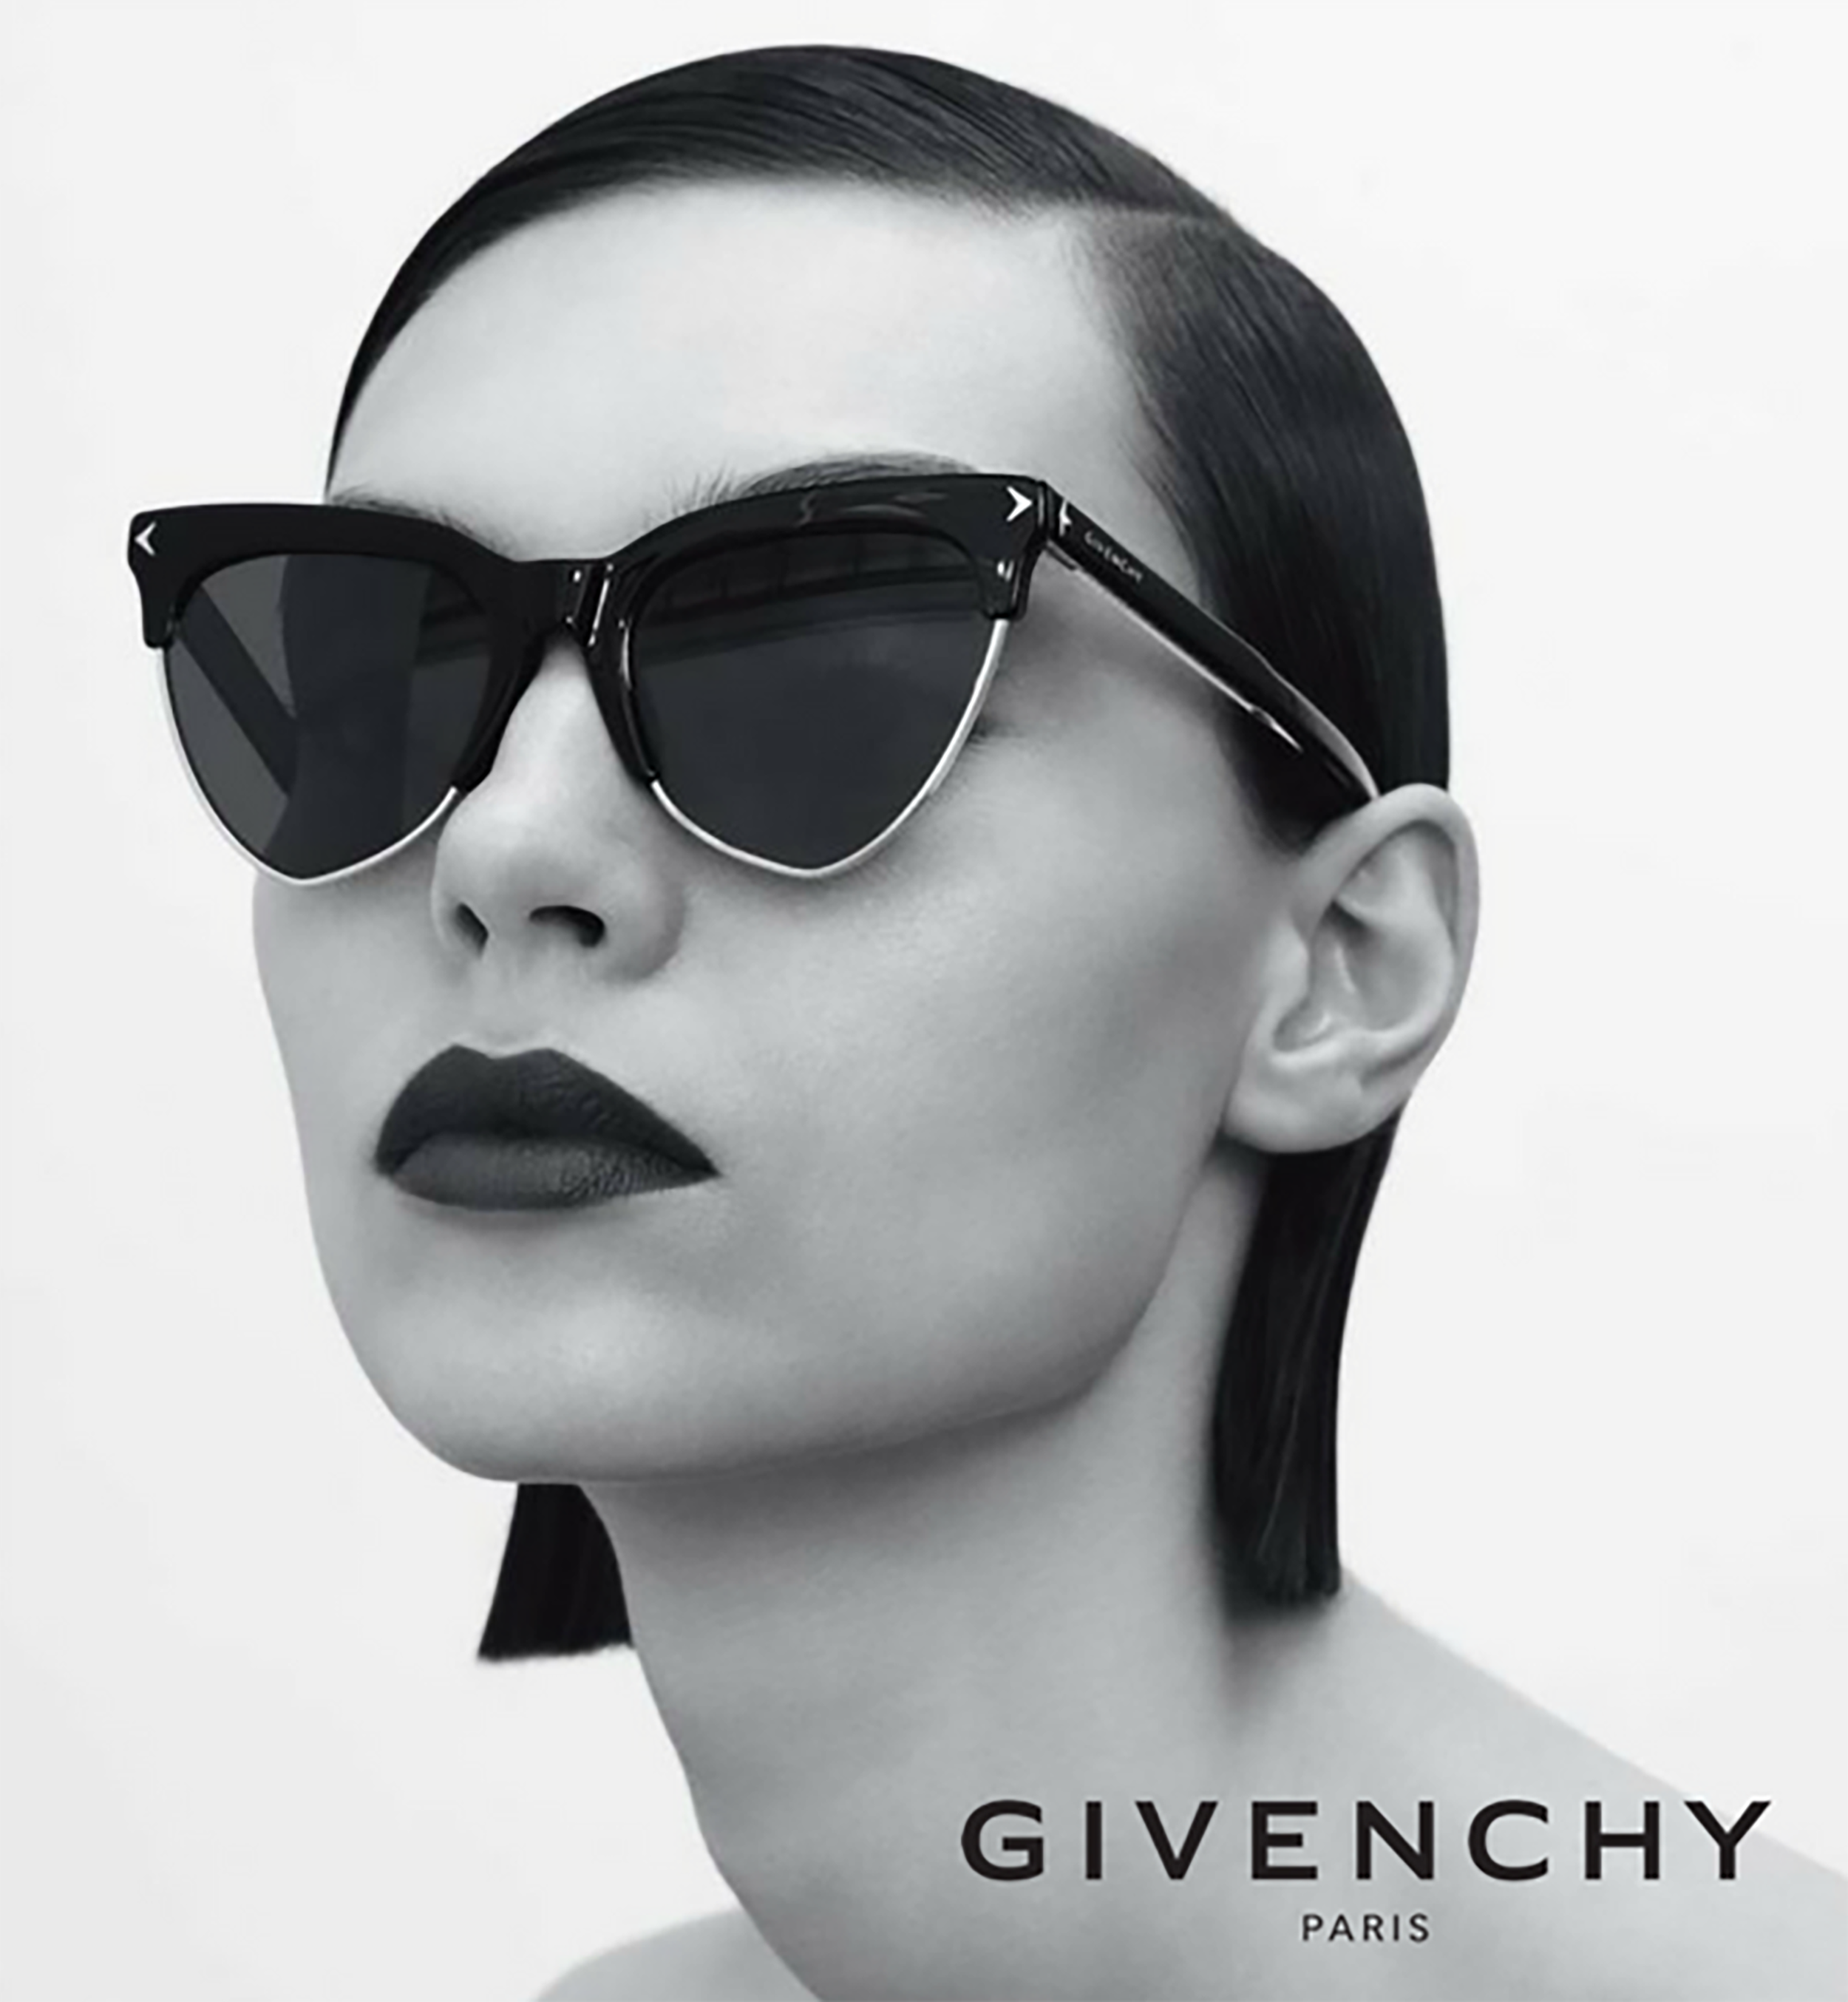 givency sunglasses winter 2017